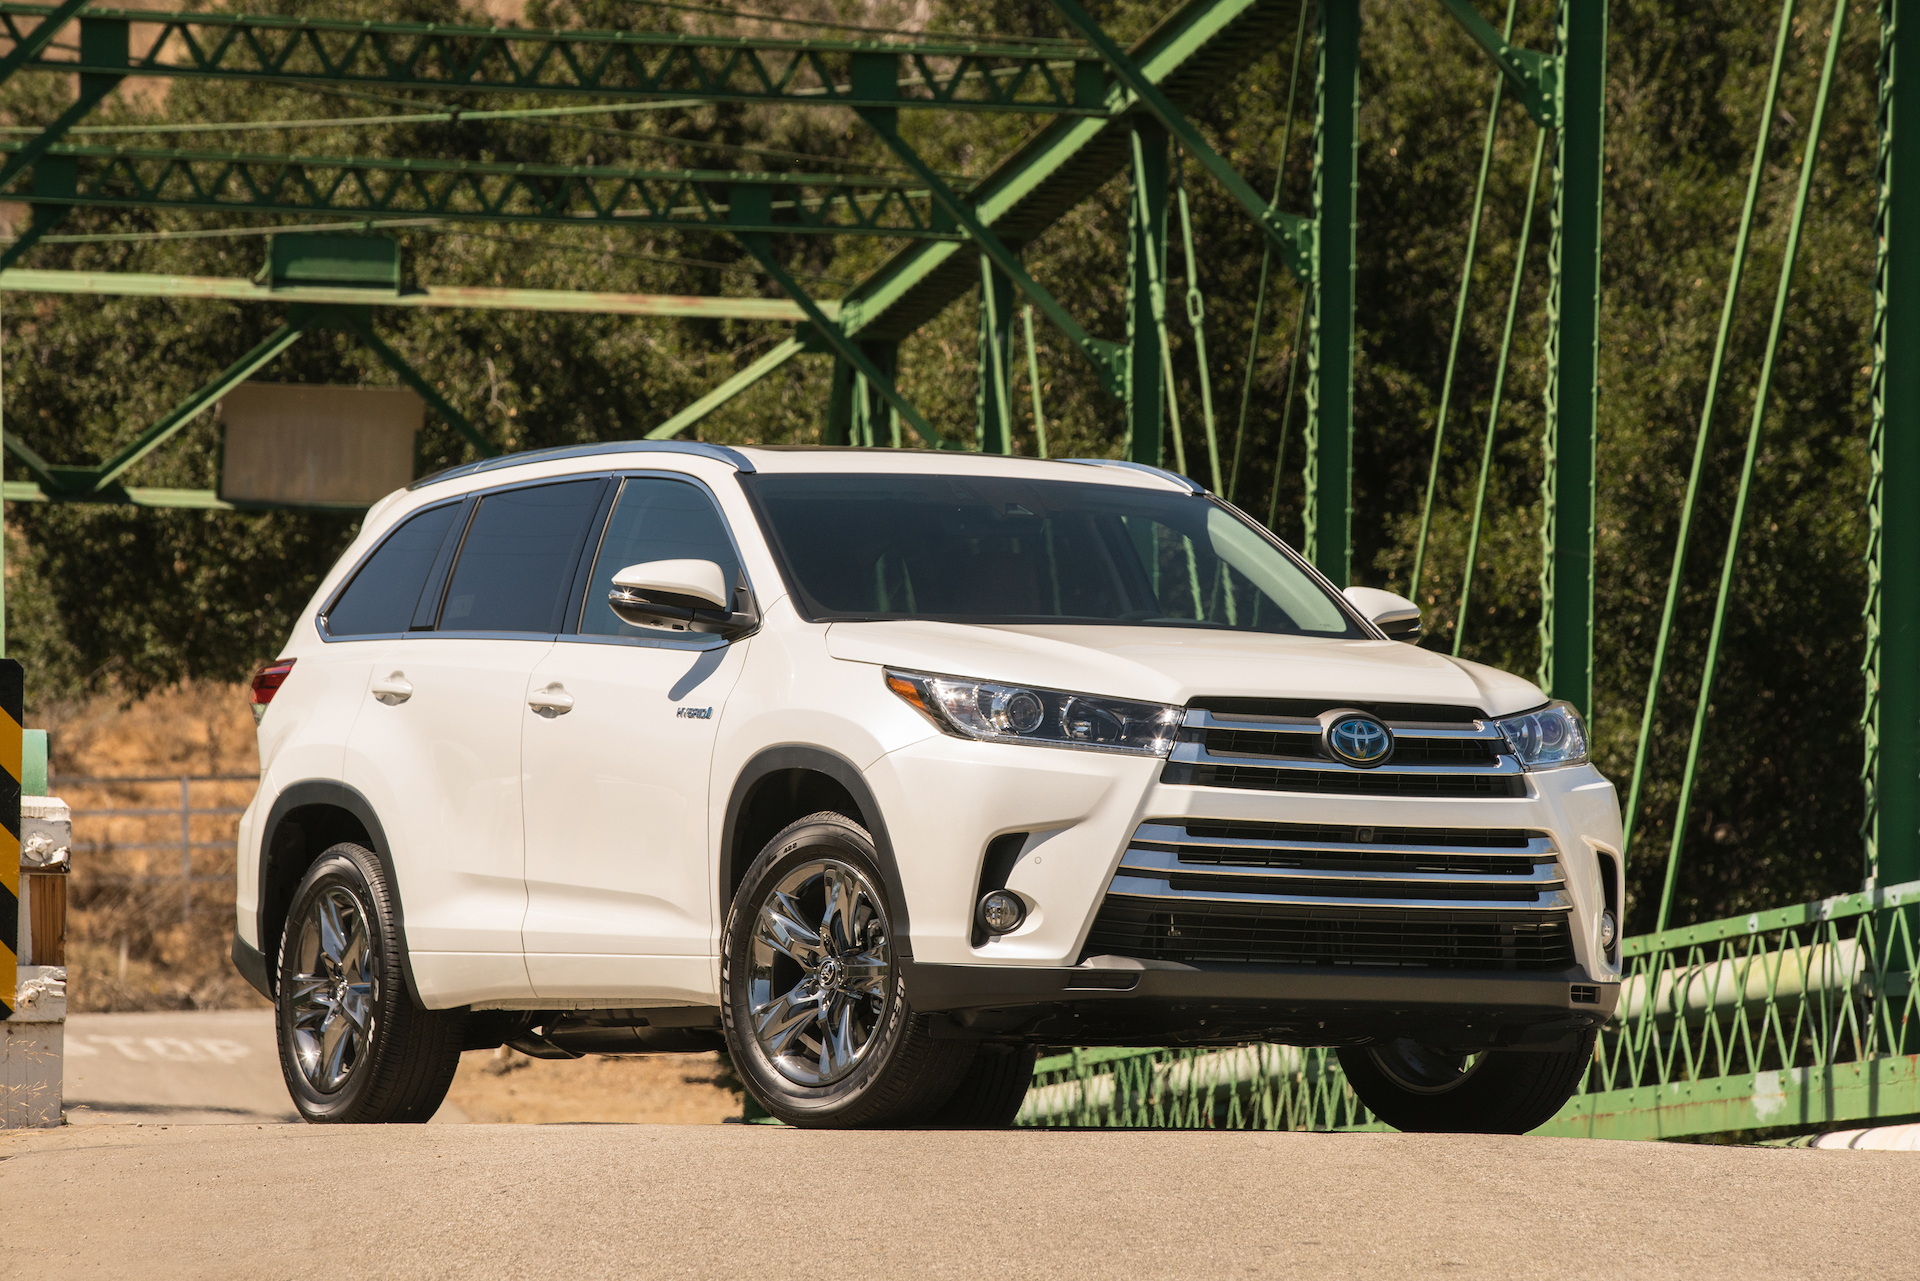 2017 Toyota Highlander Towing Capacity >> 2017 Toyota Highlander Review Ratings Specs Prices And